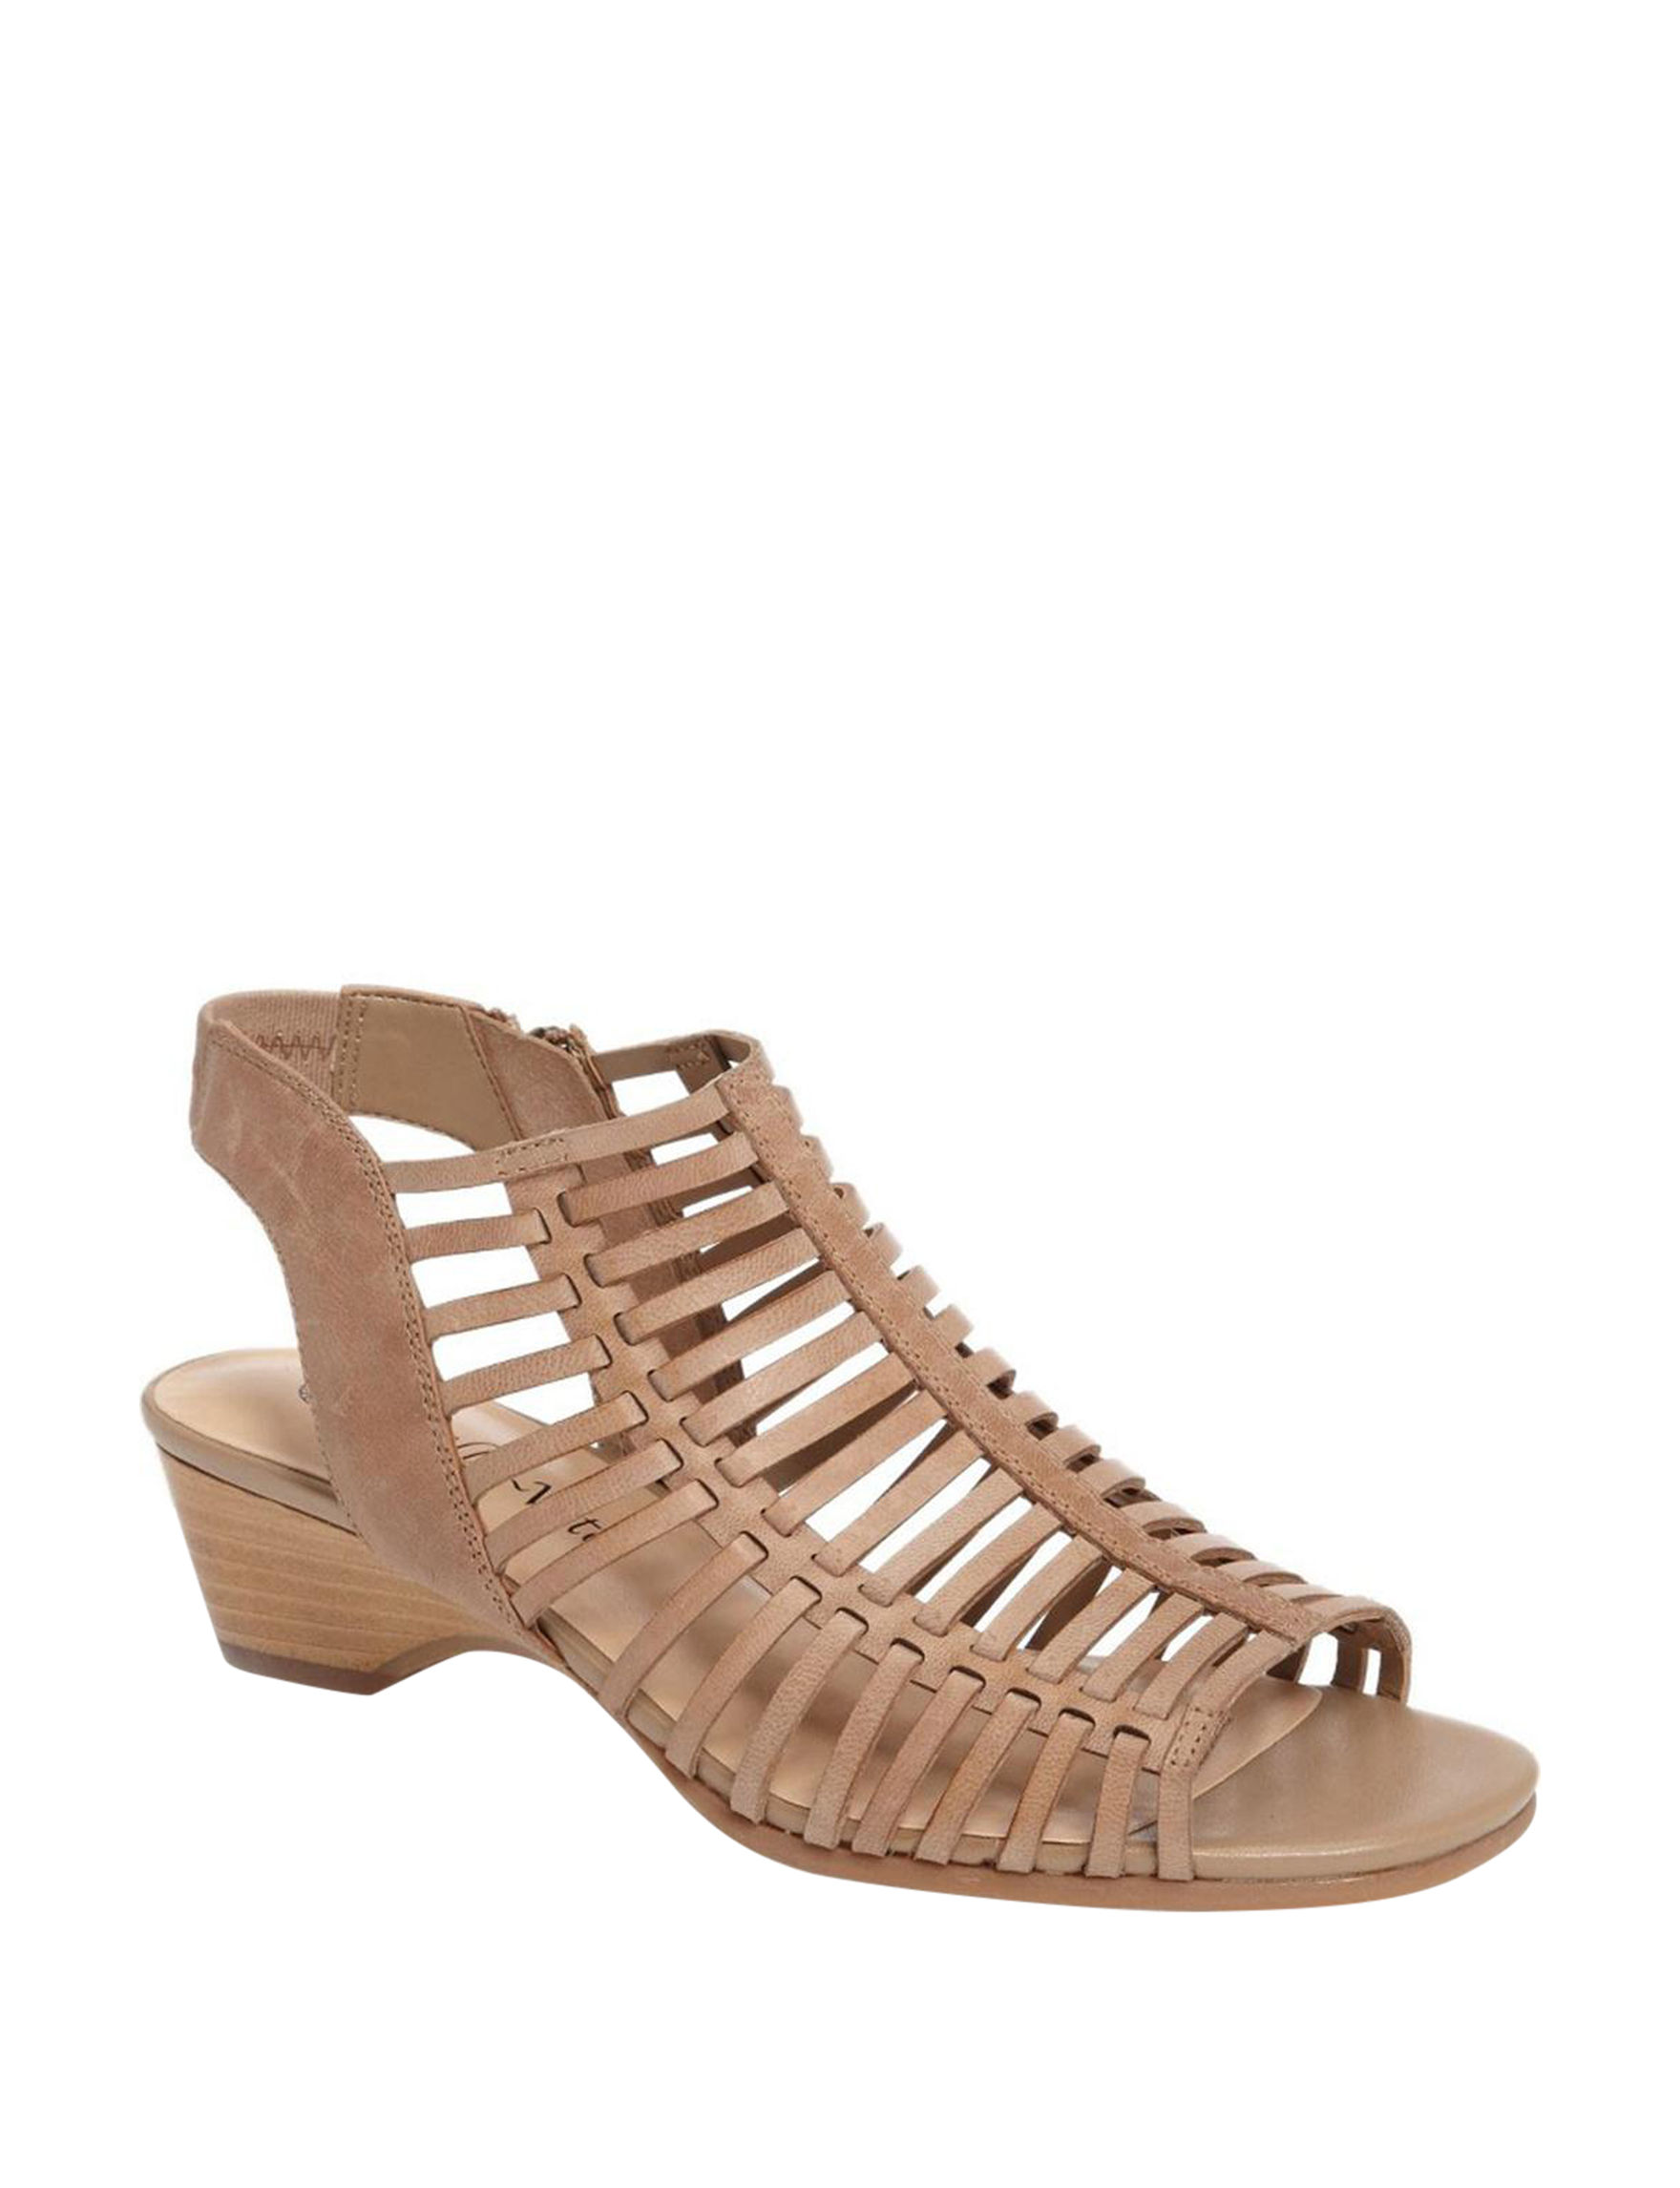 Bella Vita Brown Wedge Sandals